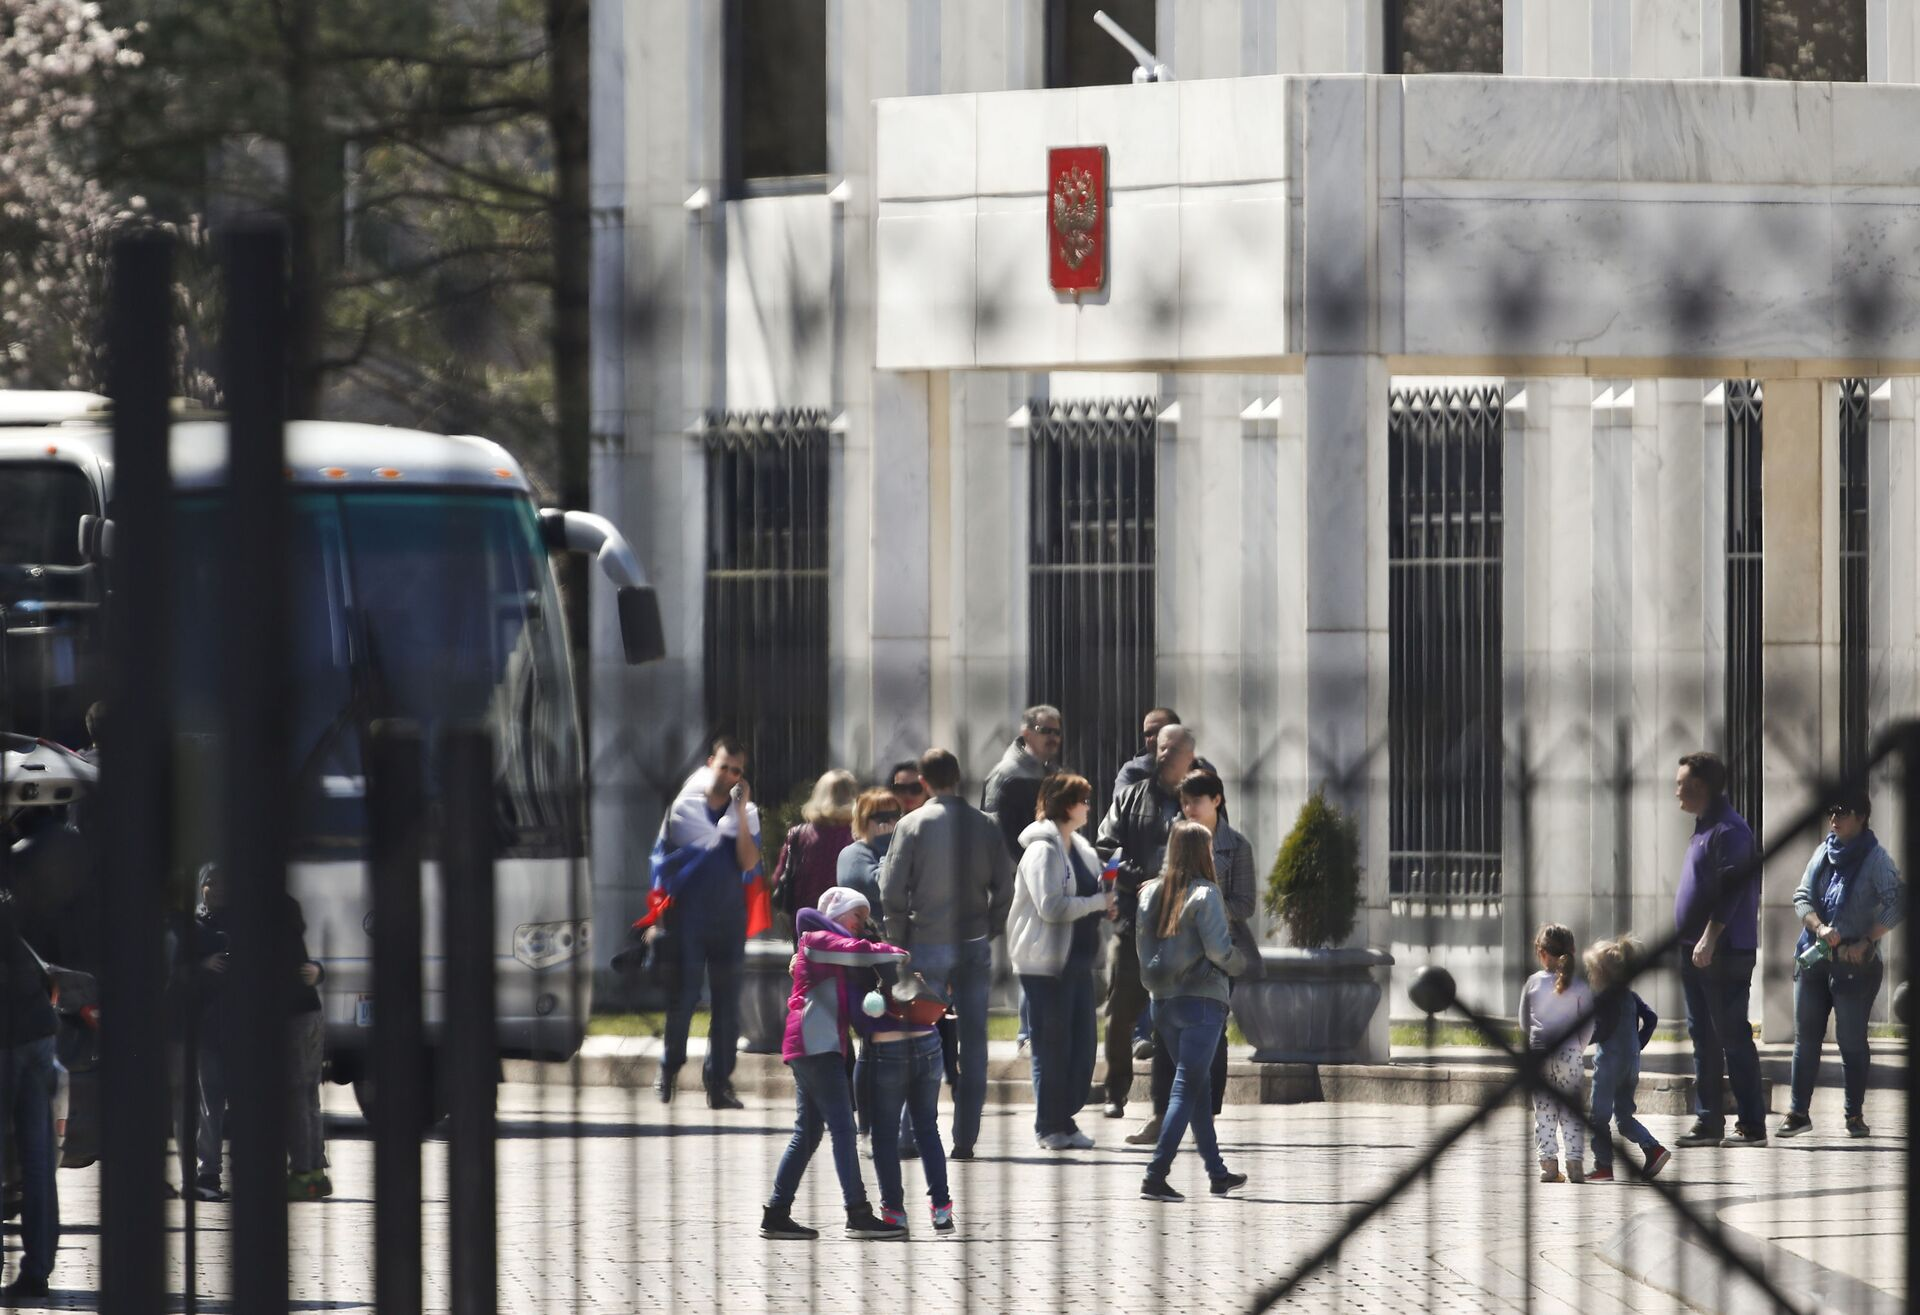 Two children embrace as people gather and board a bus at the Russian Embassy in Washington, Saturday, March 31, 2018 - Sputnik International, 1920, 07.09.2021